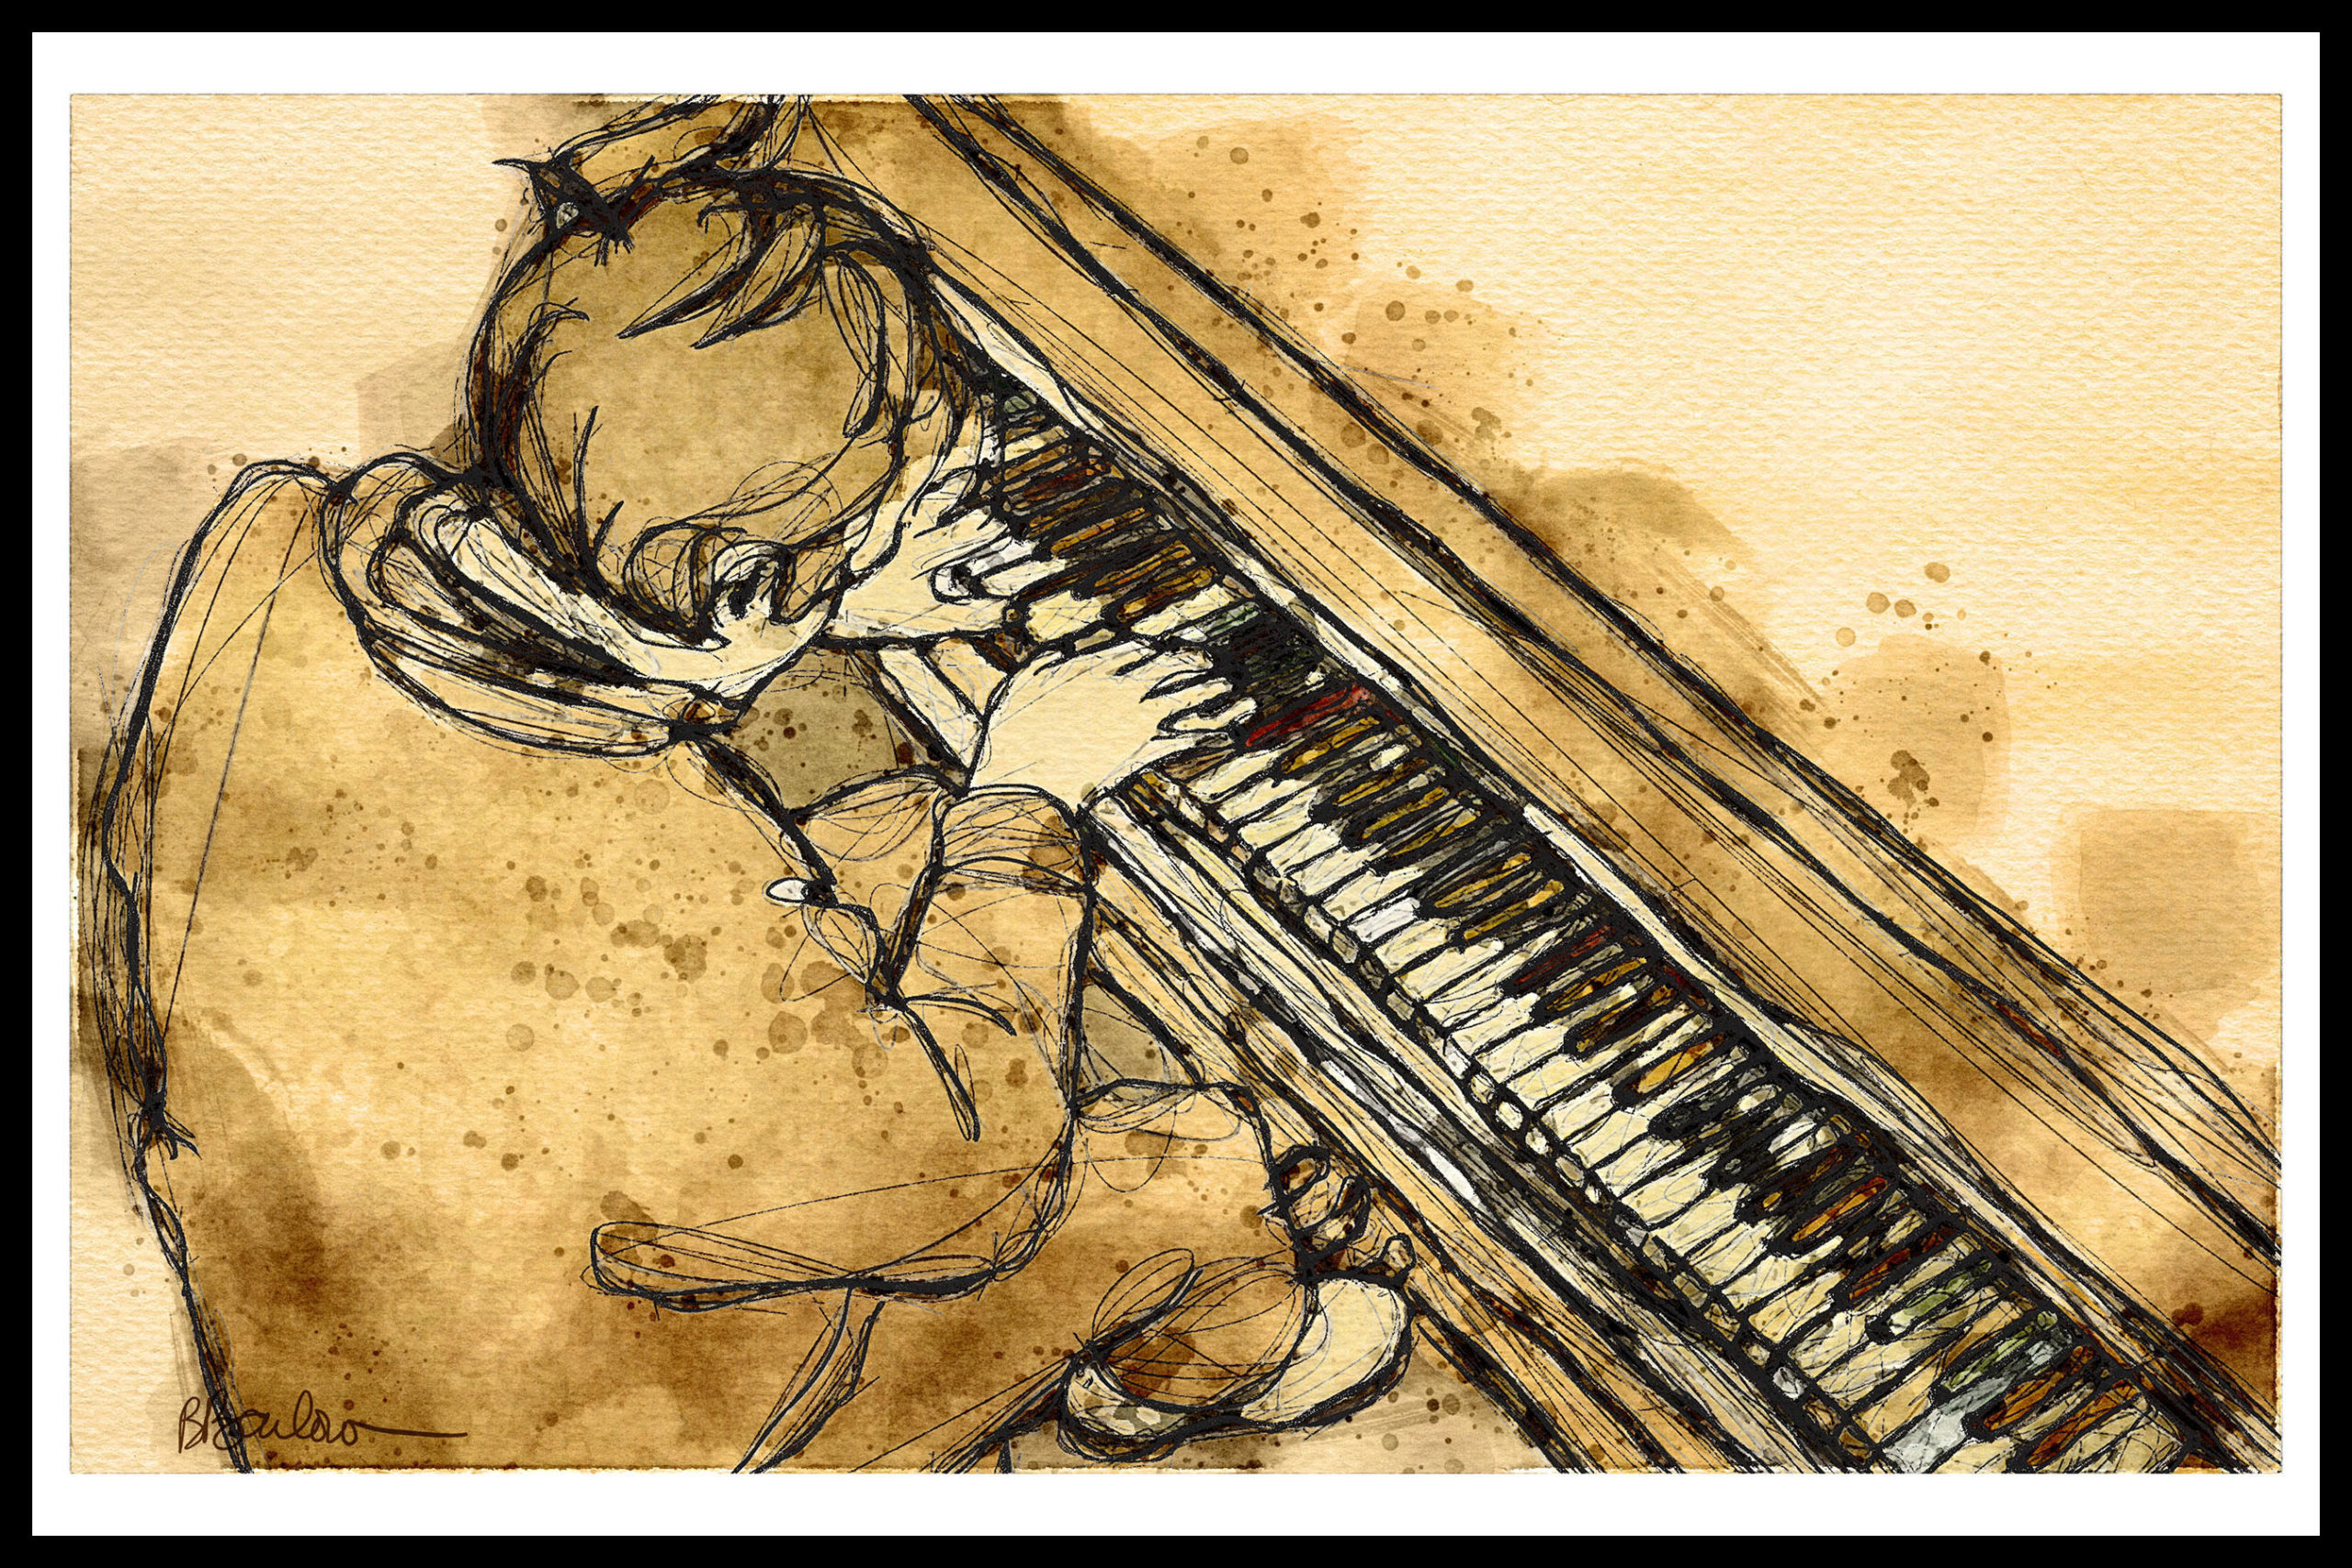 Piano Player by Bill Barlow